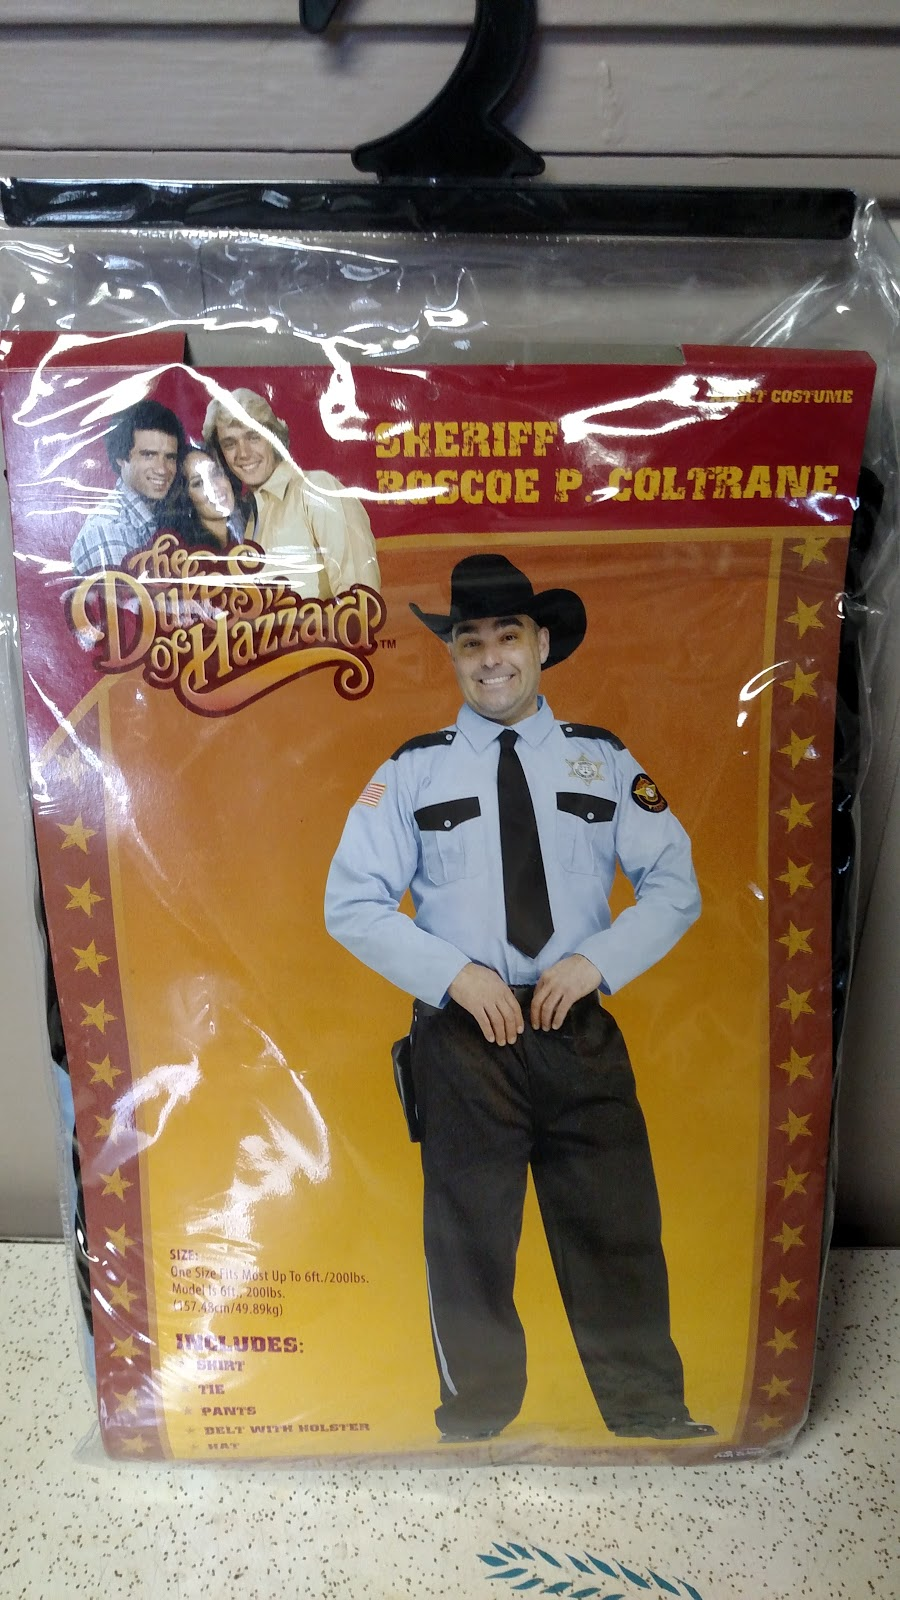 halloween comes to hazzard county or halloween hazzard style dukes of hazzard halloween costumes - Daisy Dukes Halloween Costume